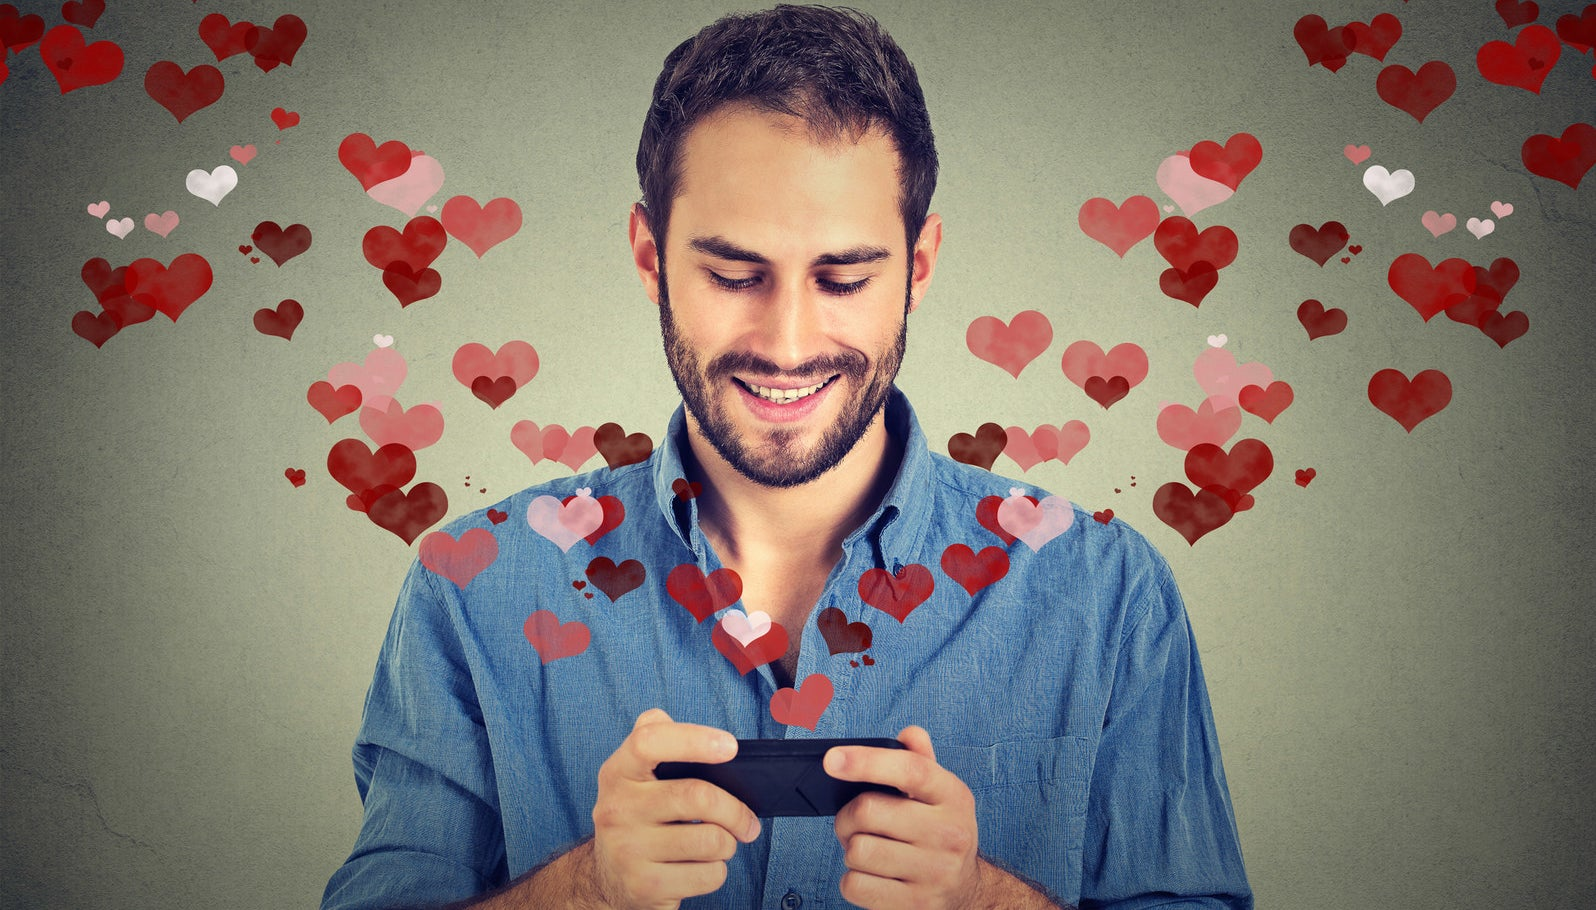 Cracking The Tinder Code: Love In The Age Of Algorithms